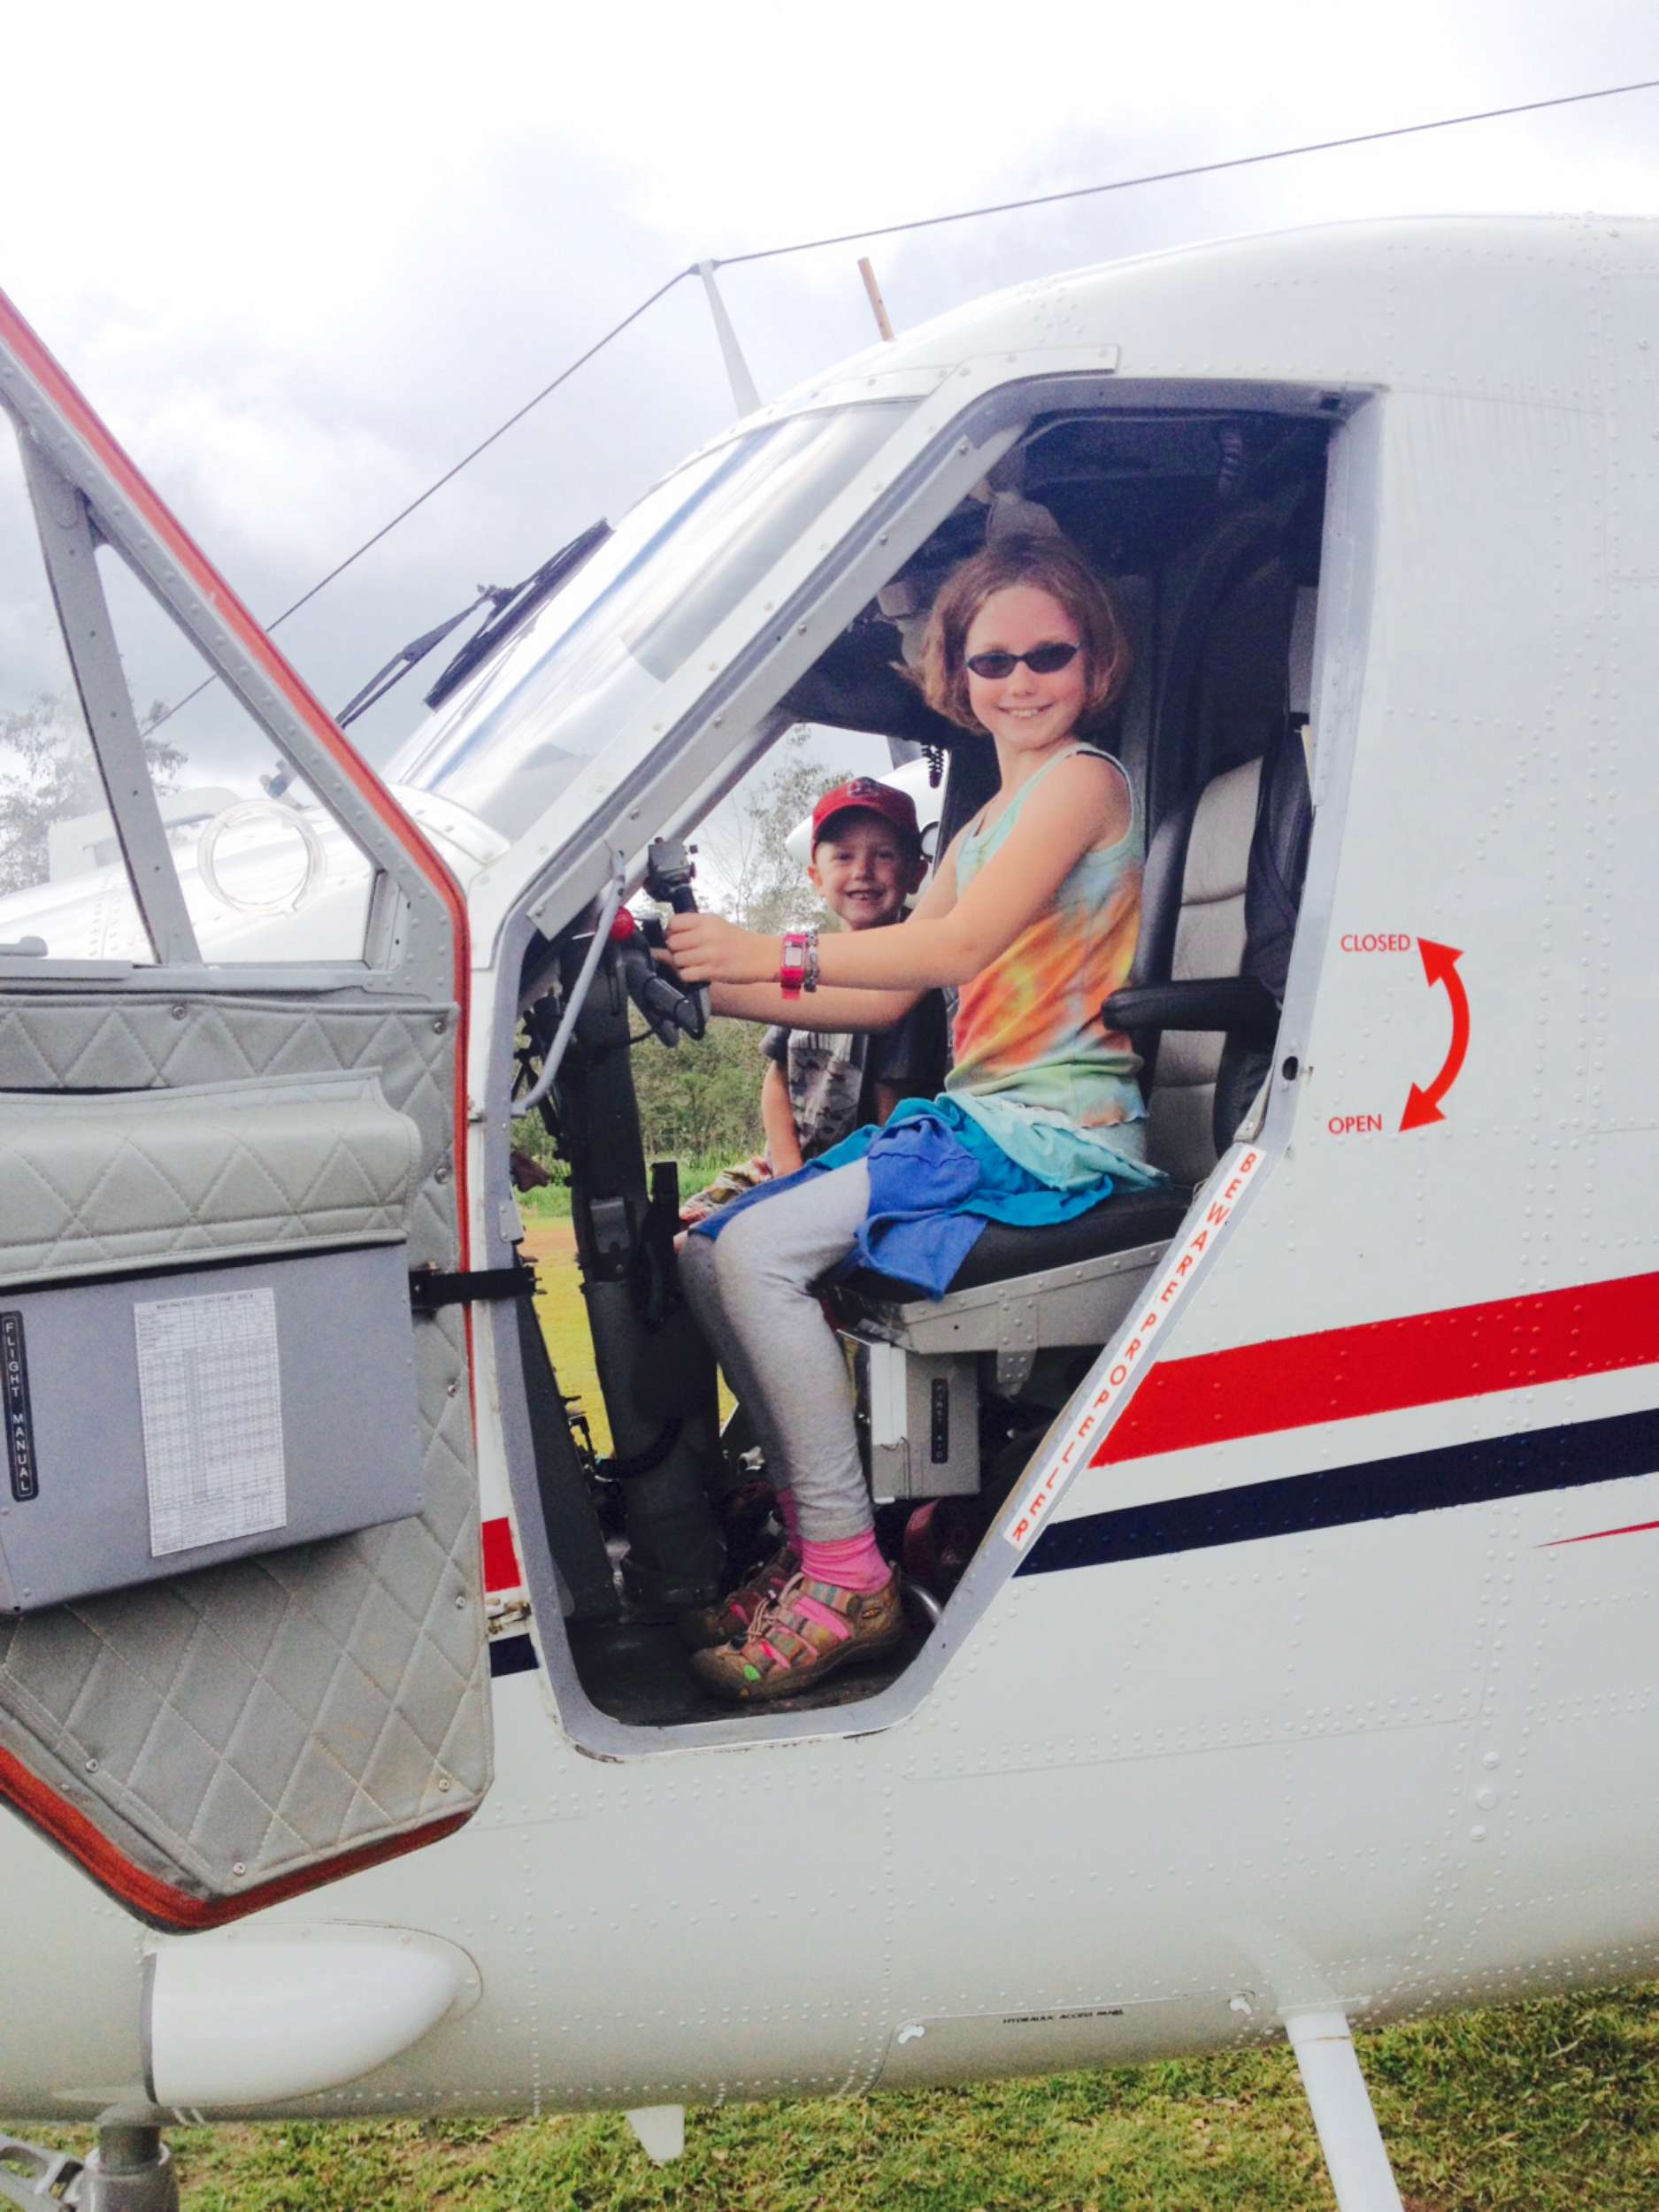 Nori and Banner came to help me help move another person relocating from the Sepik province on the Queen's Birthday (a big thing here...). In any case, Aviation was closed, but the MAF pilots that showed up let the kids check out the Twin Otter.